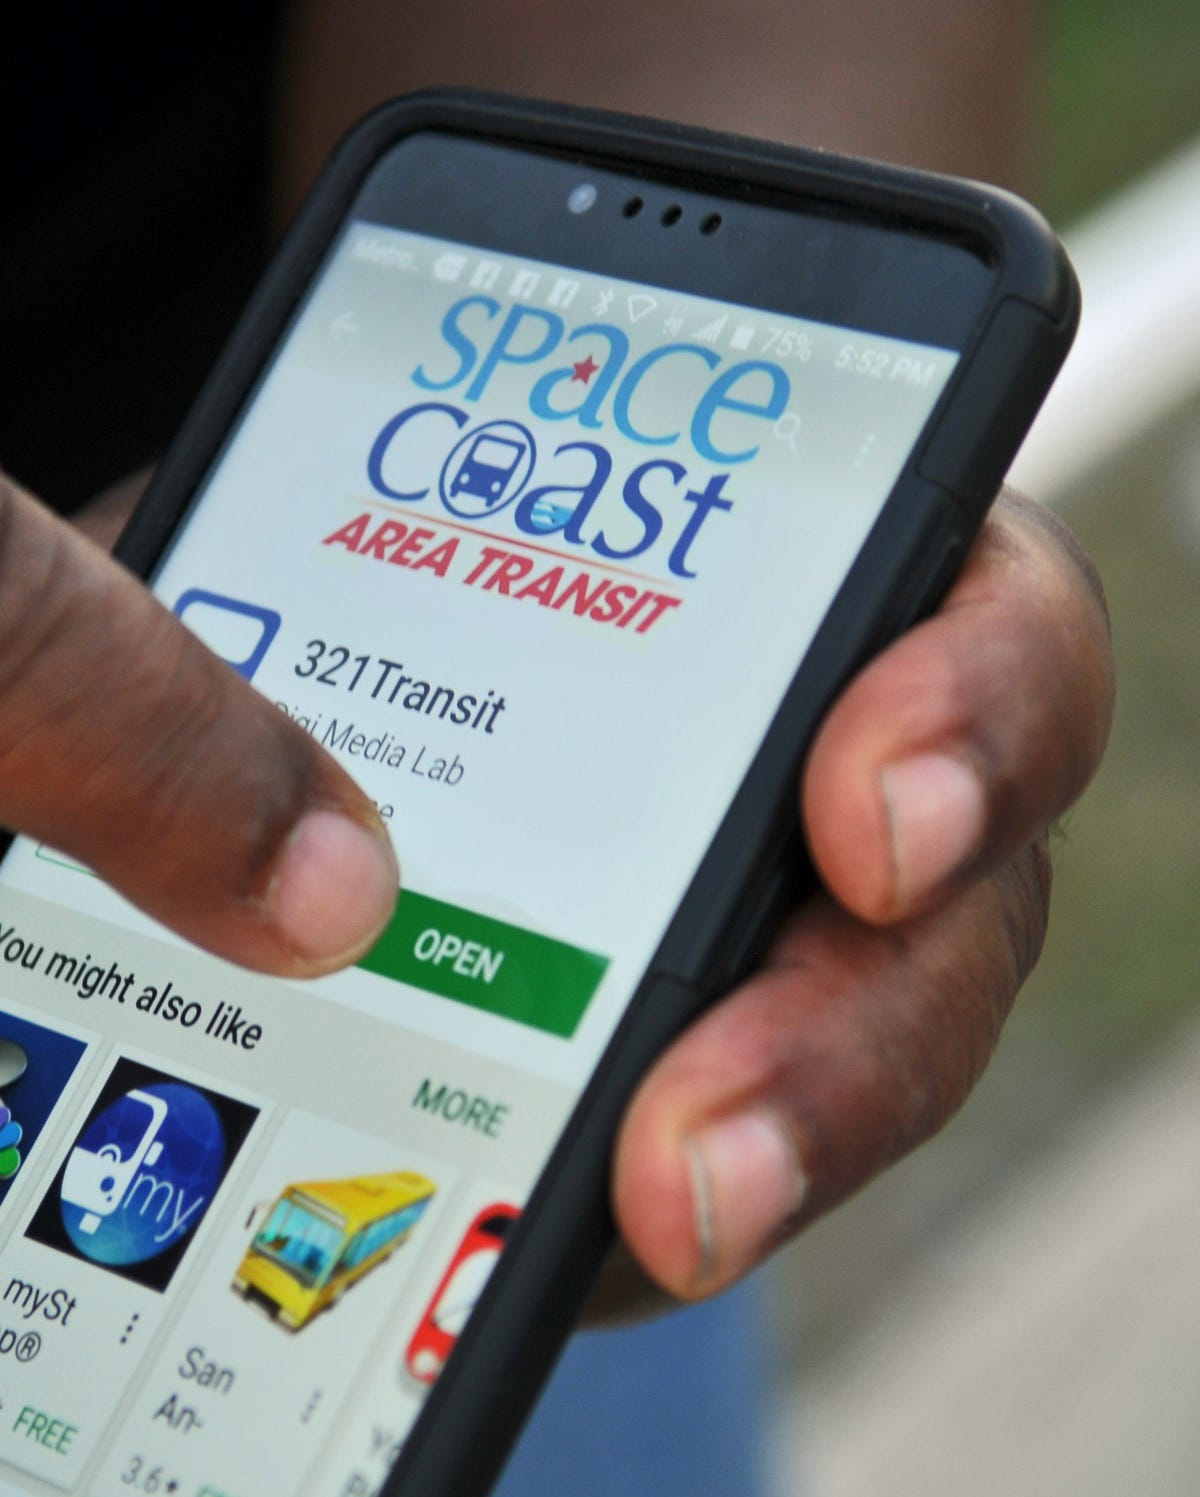 SCAT offers free bus rides Friday if you download app